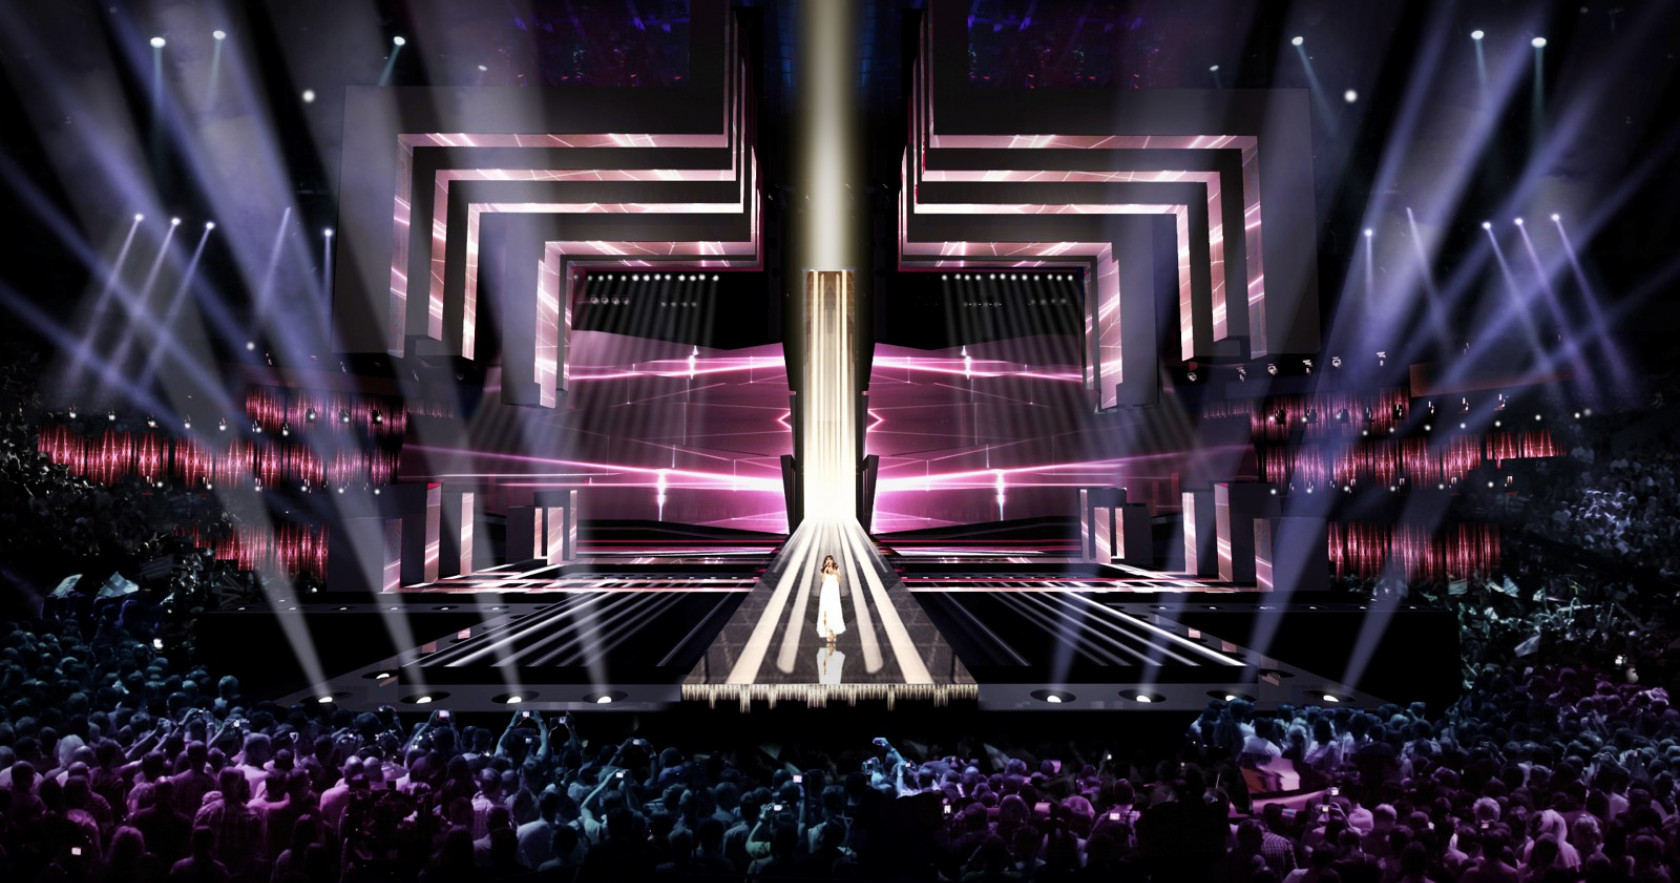 Stage design for the 2016 Eurovision Song Contest